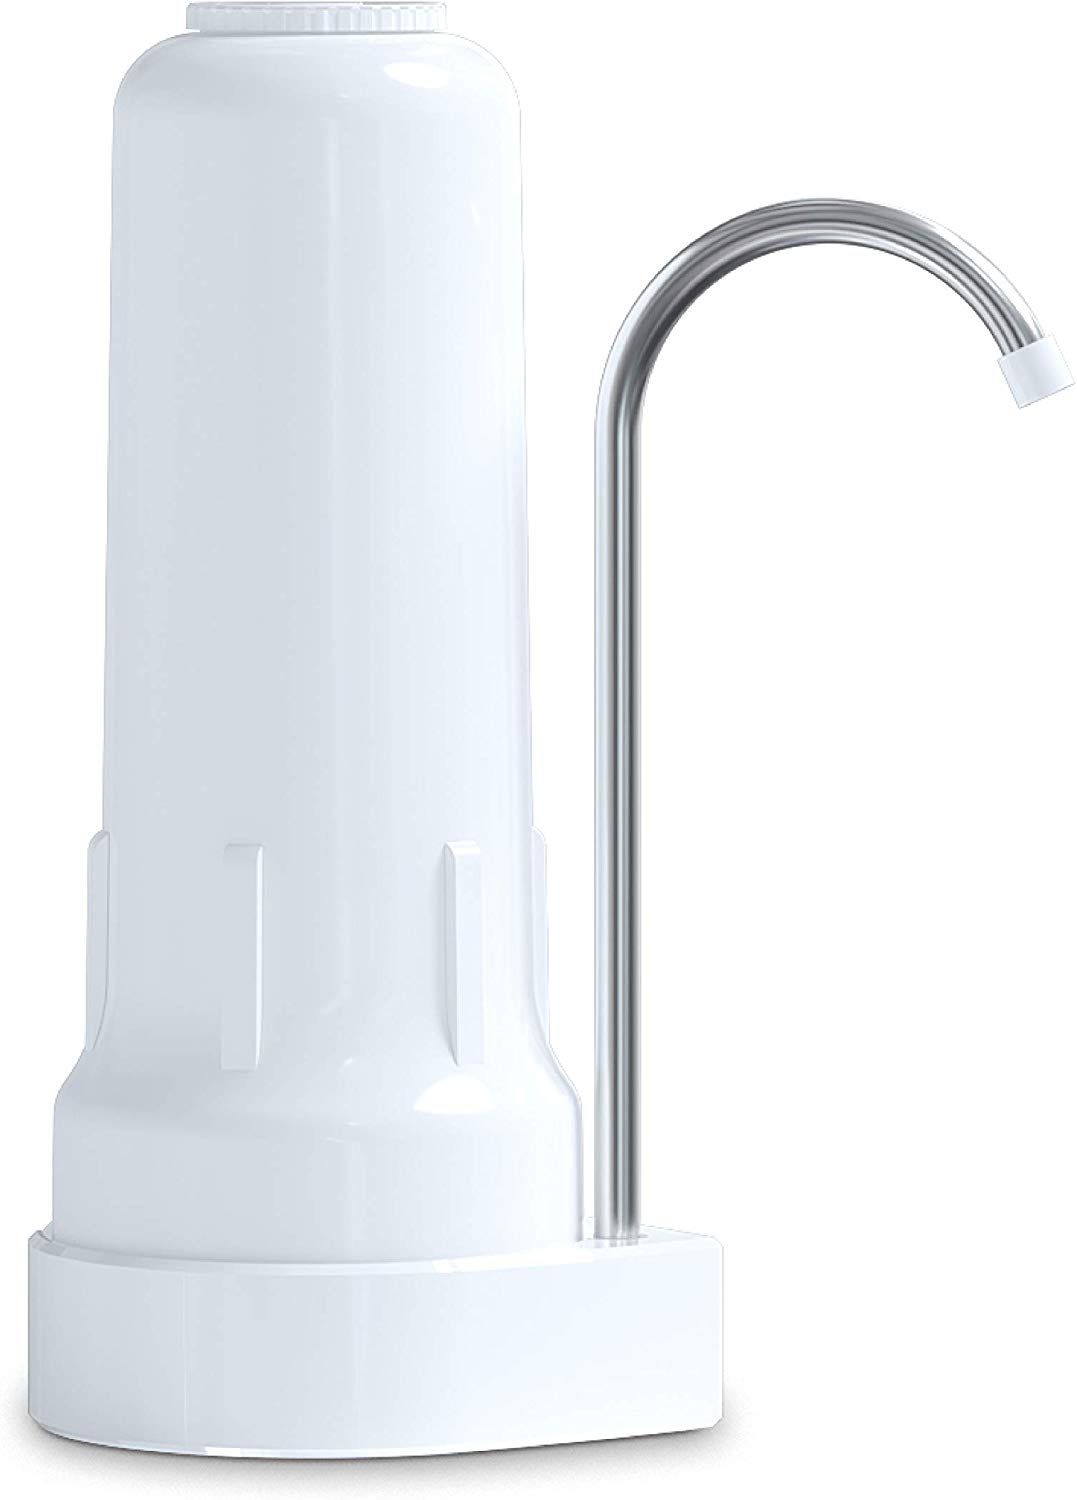 Ecosoft Countertop Water Filter System review